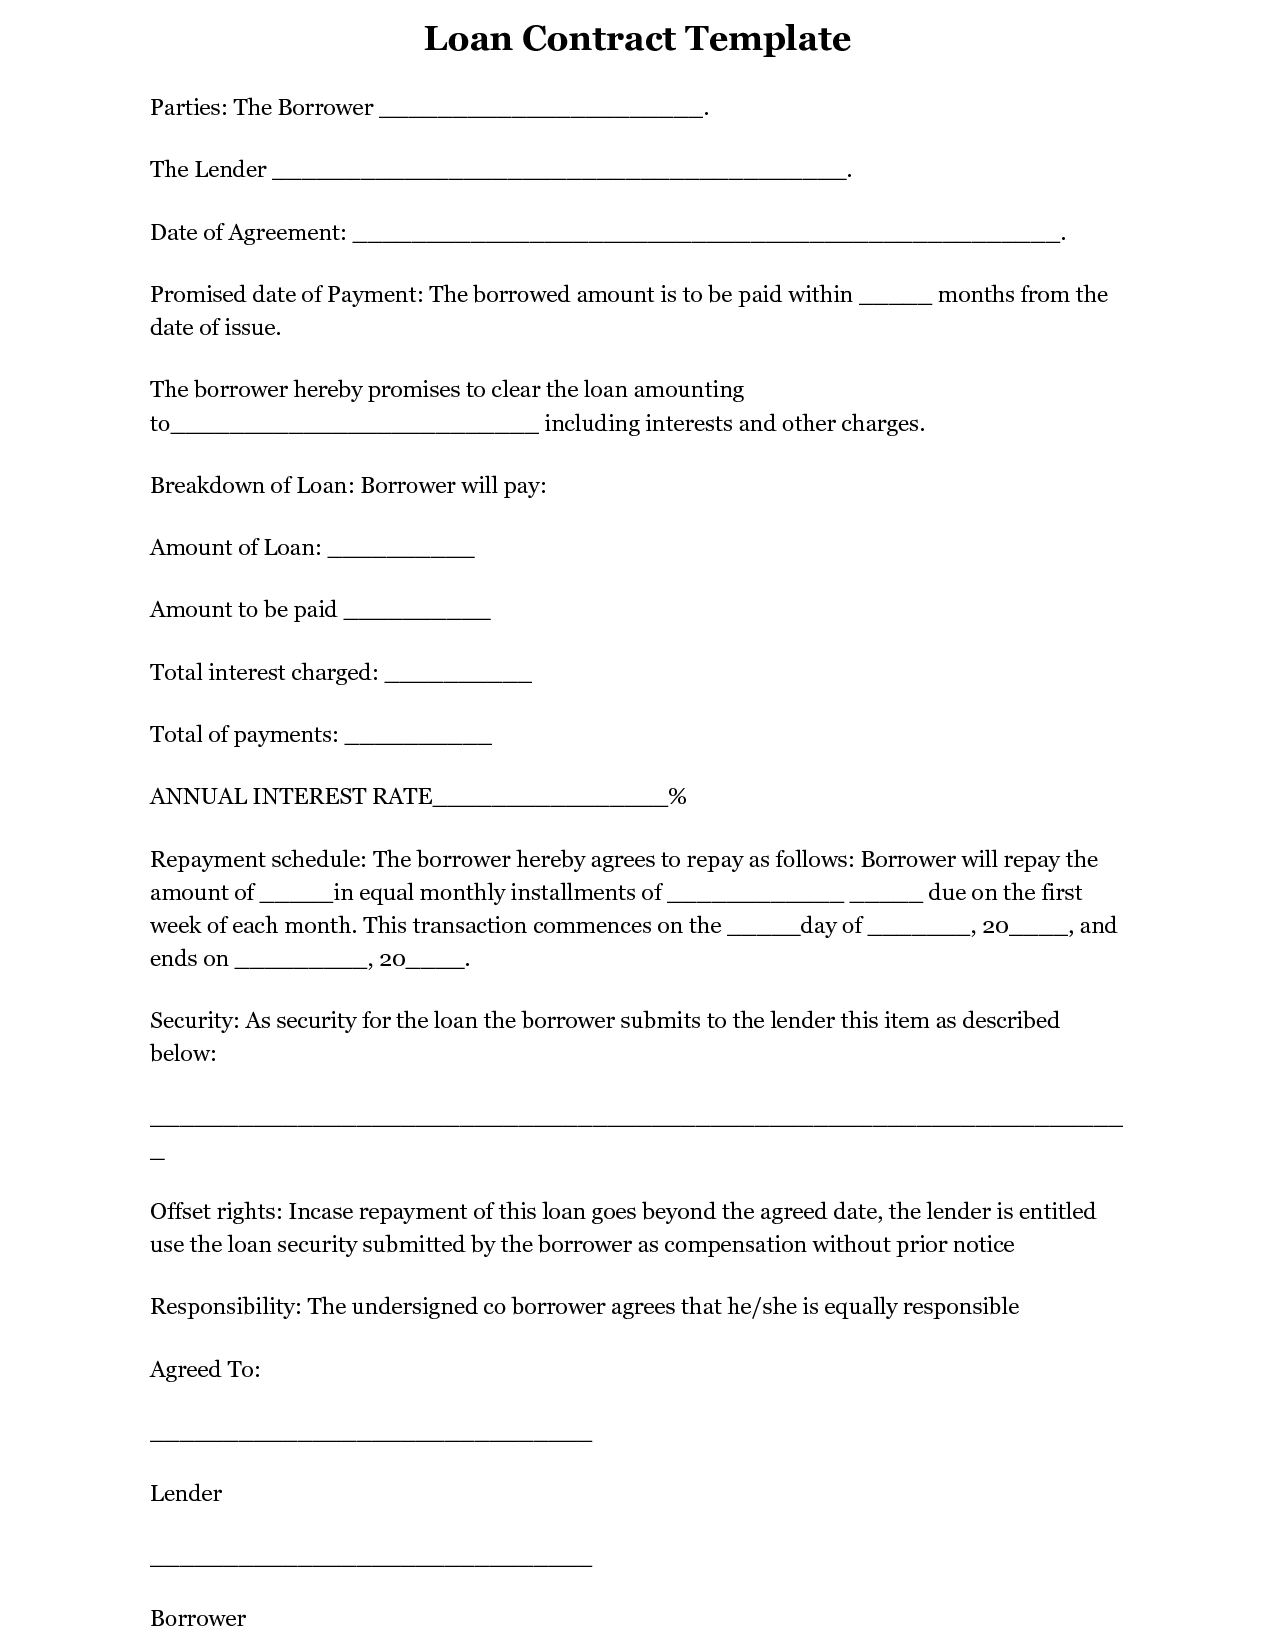 Simple Loan Agreement Template Free. Simple Interest Loan Agreement Template  ...  Loan Agreement Templates